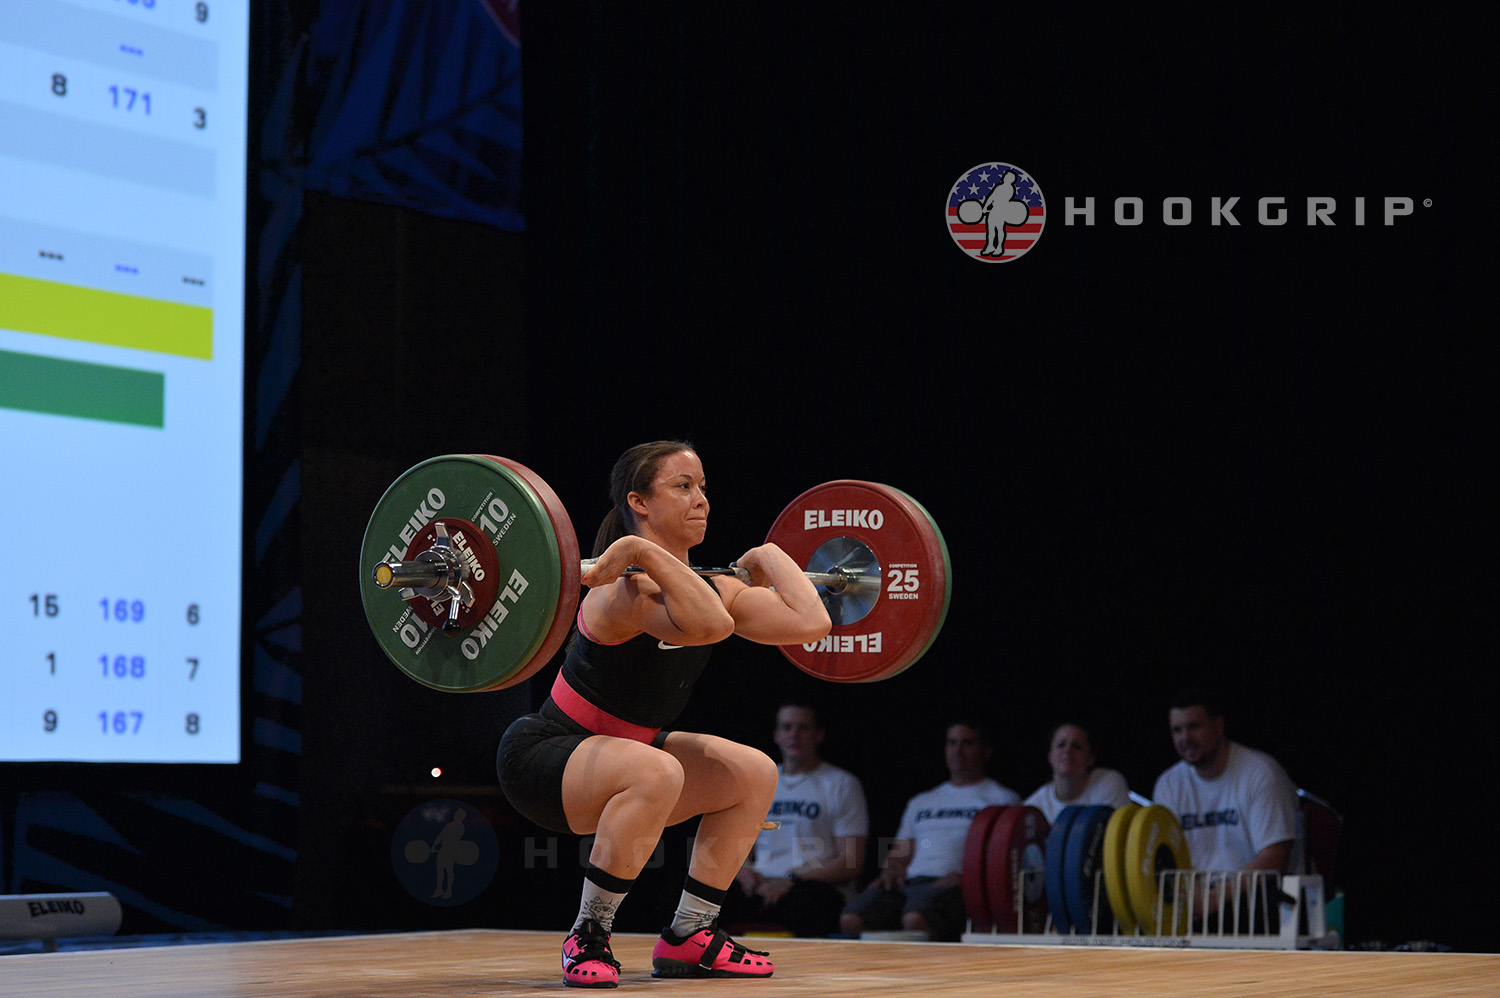 2016nationals-day1-58a-945.jpg